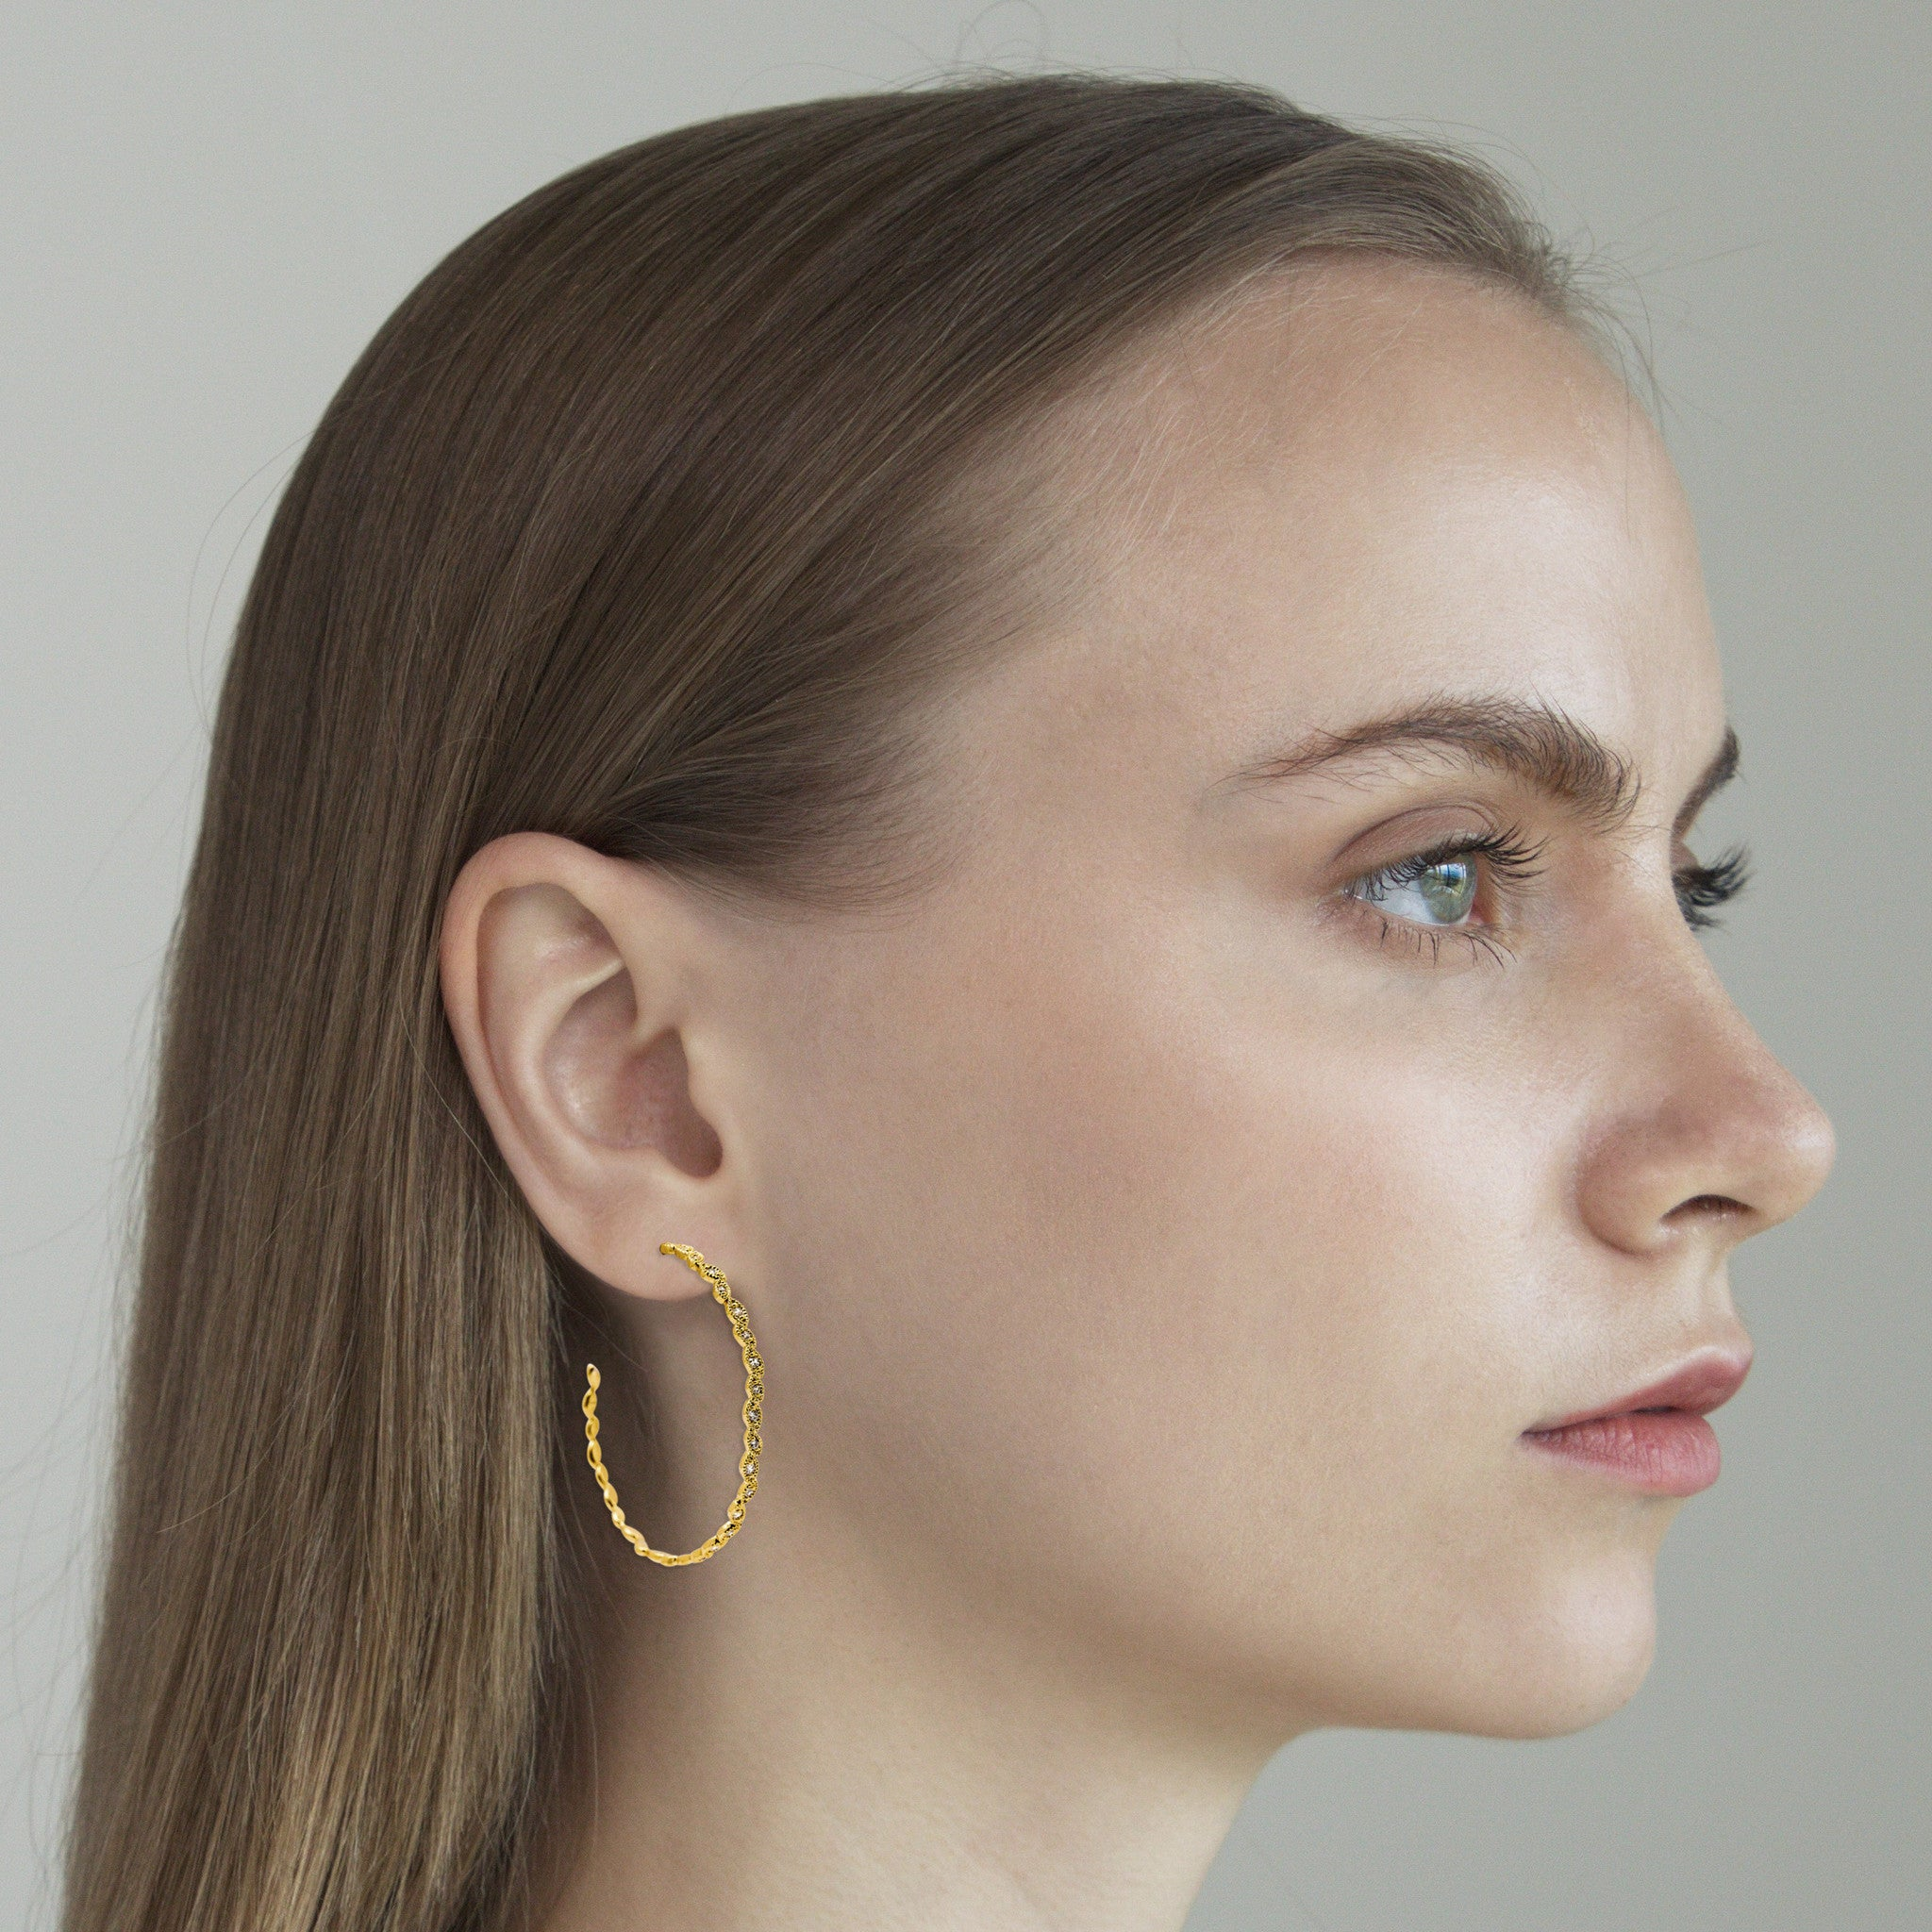 DELICATE LEAF HOOPS WITH PAVE CZ DETAILS